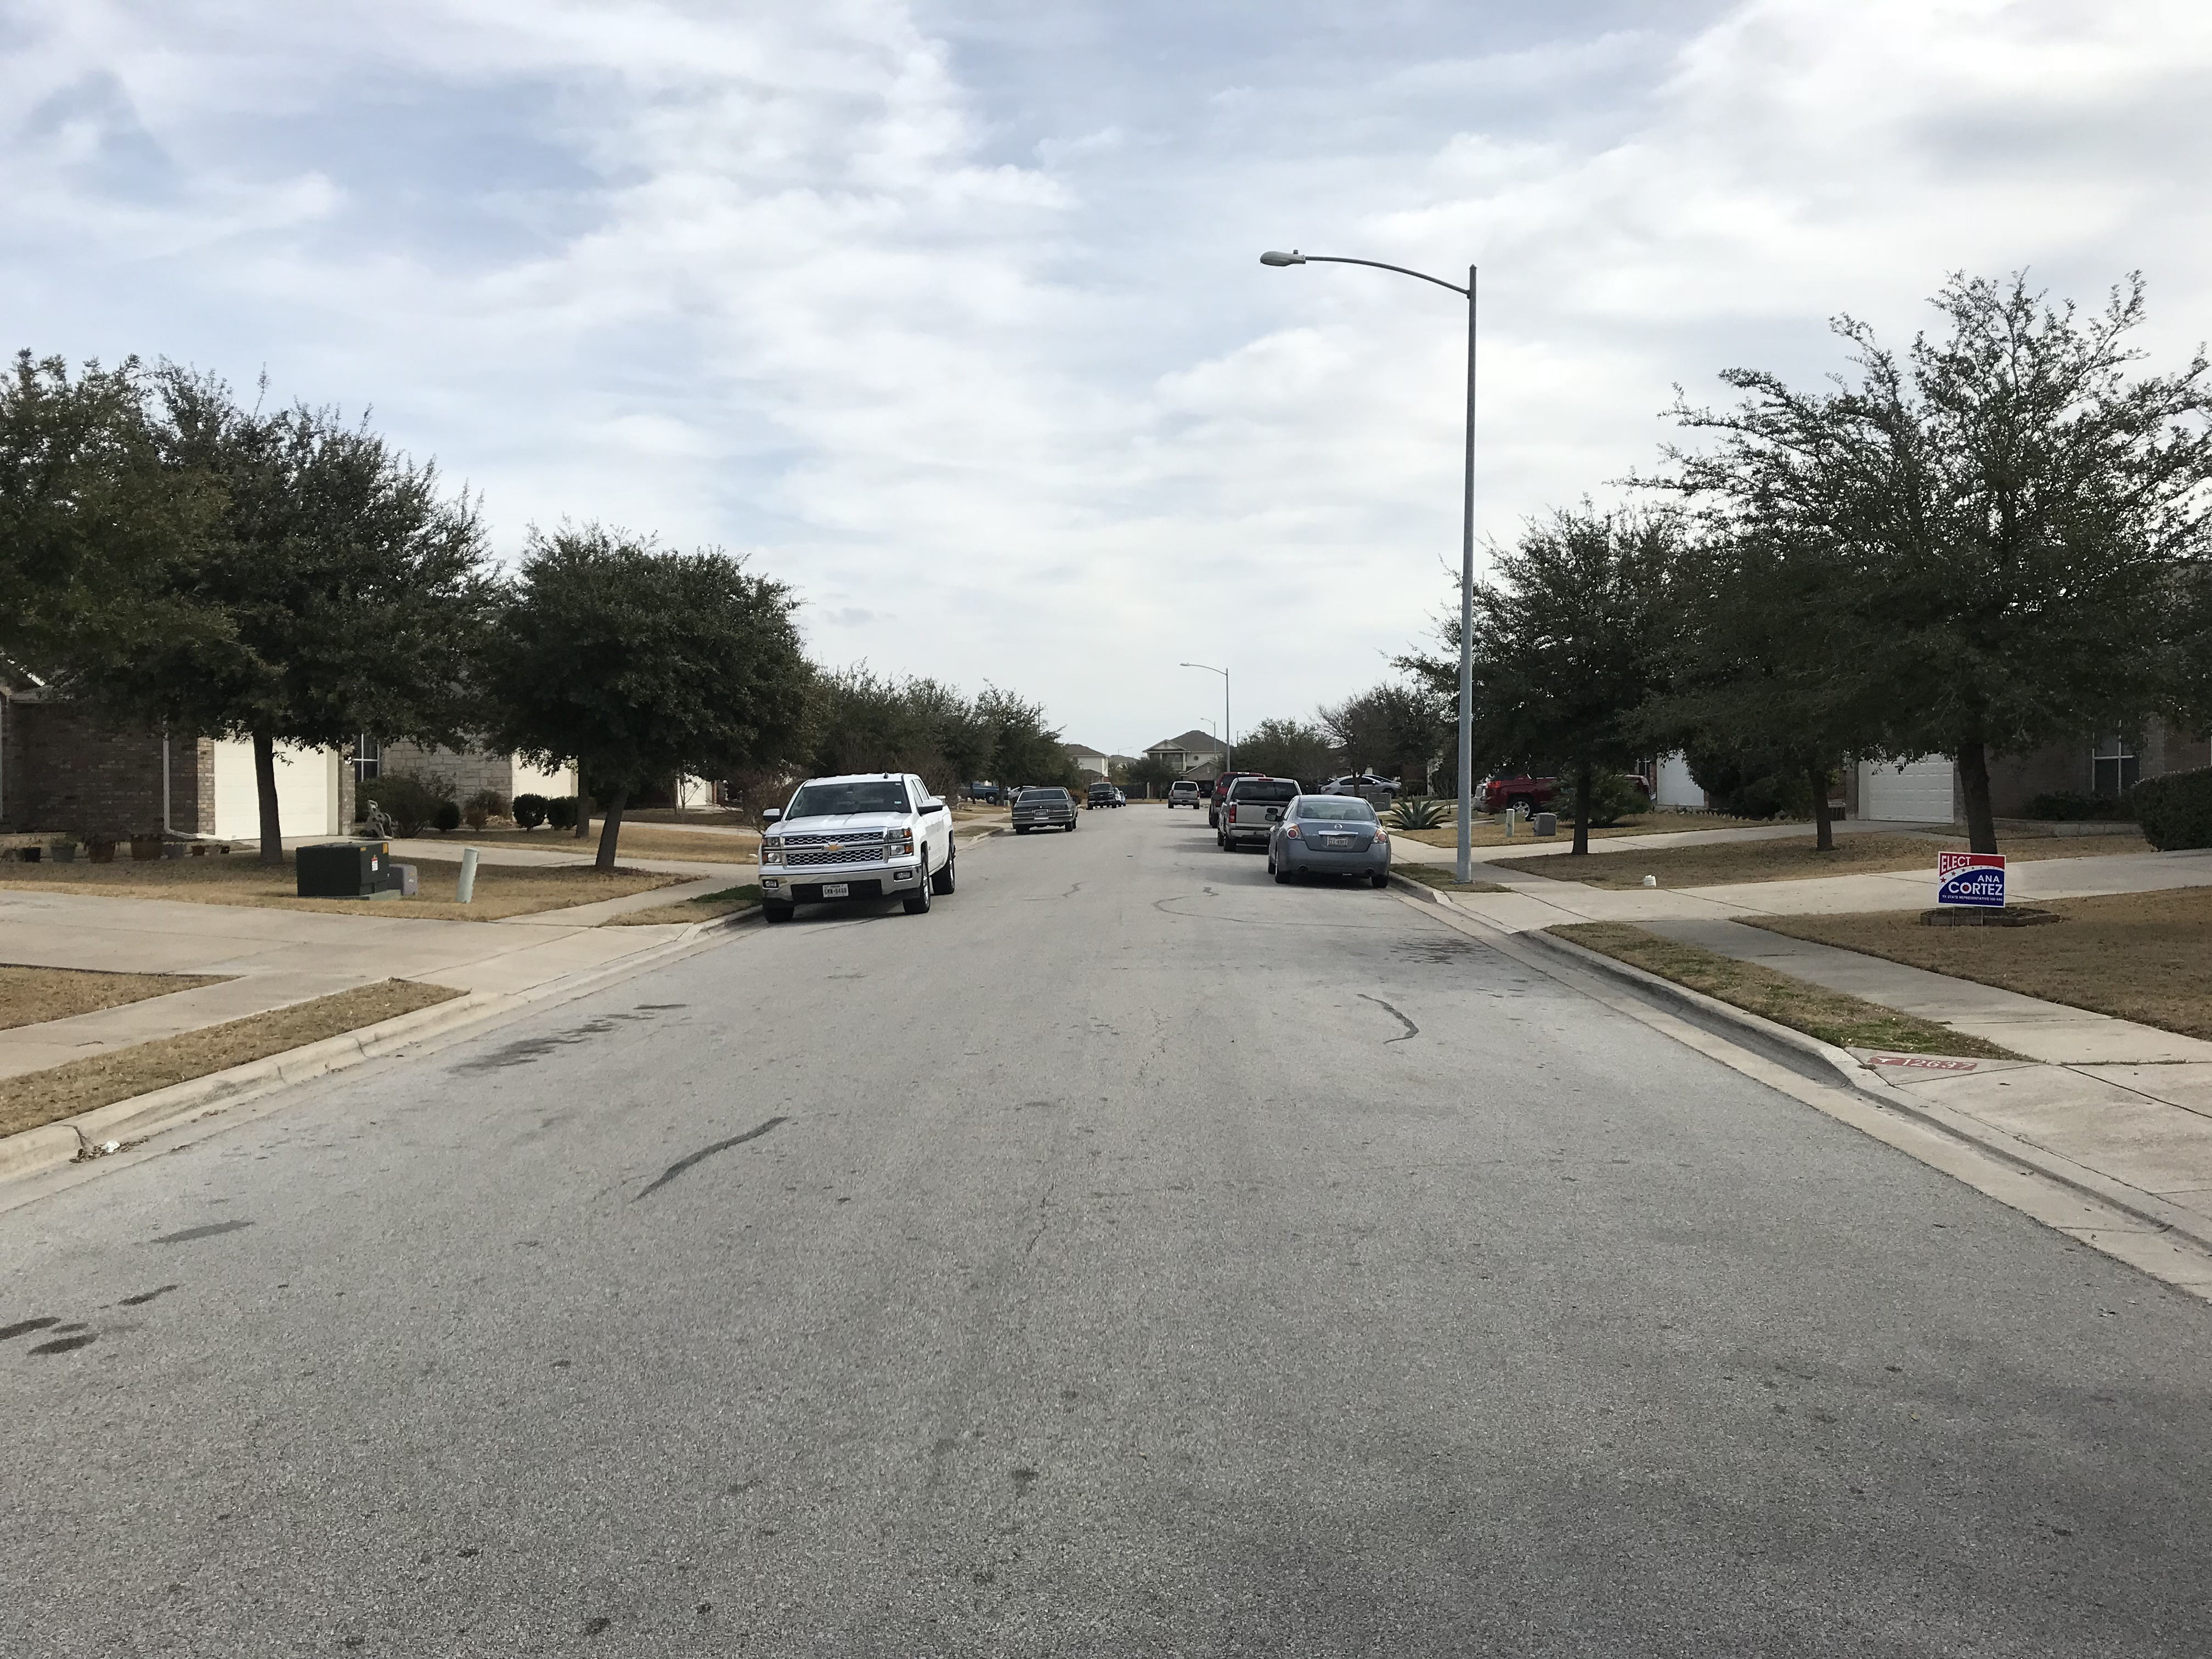 William Harrison Street in Manor where a man was found shot to death in a car parked in a driveway the night of Jan. 31, 2018. (KXAN Photo/Todd Bailey)